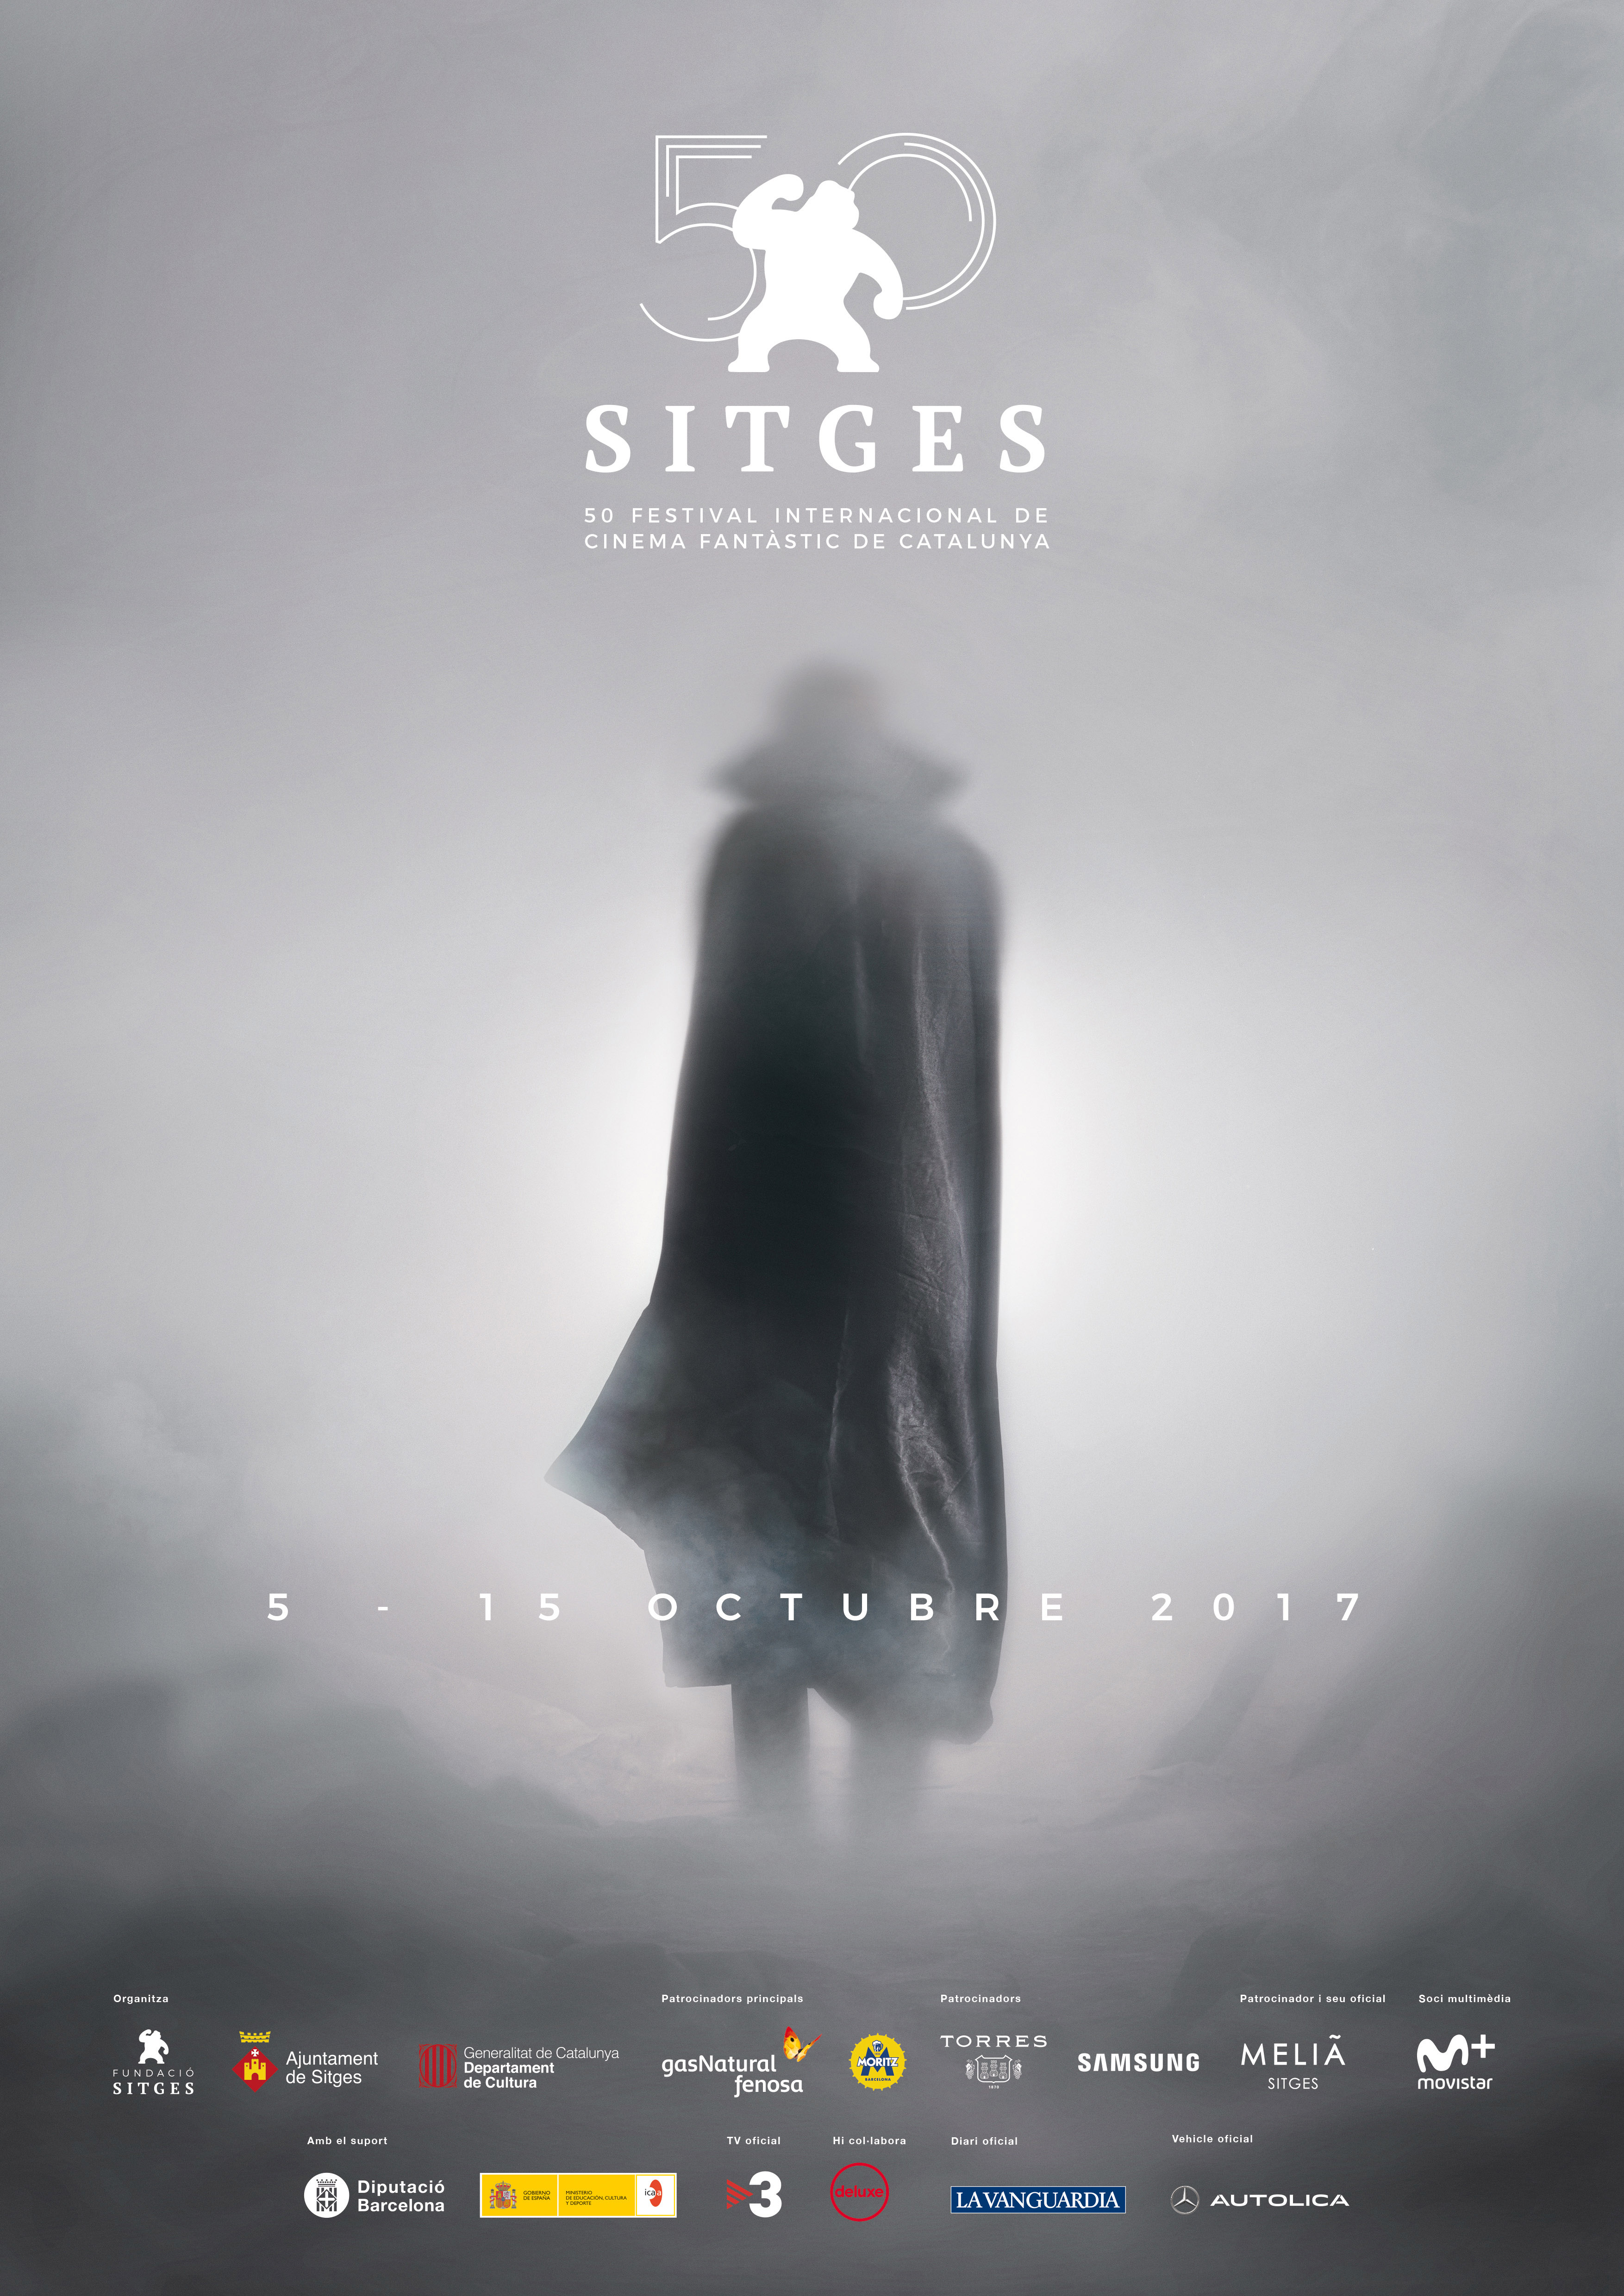 The Dracula figure is featured at the Sitges Film Festival's 50th  anniversary